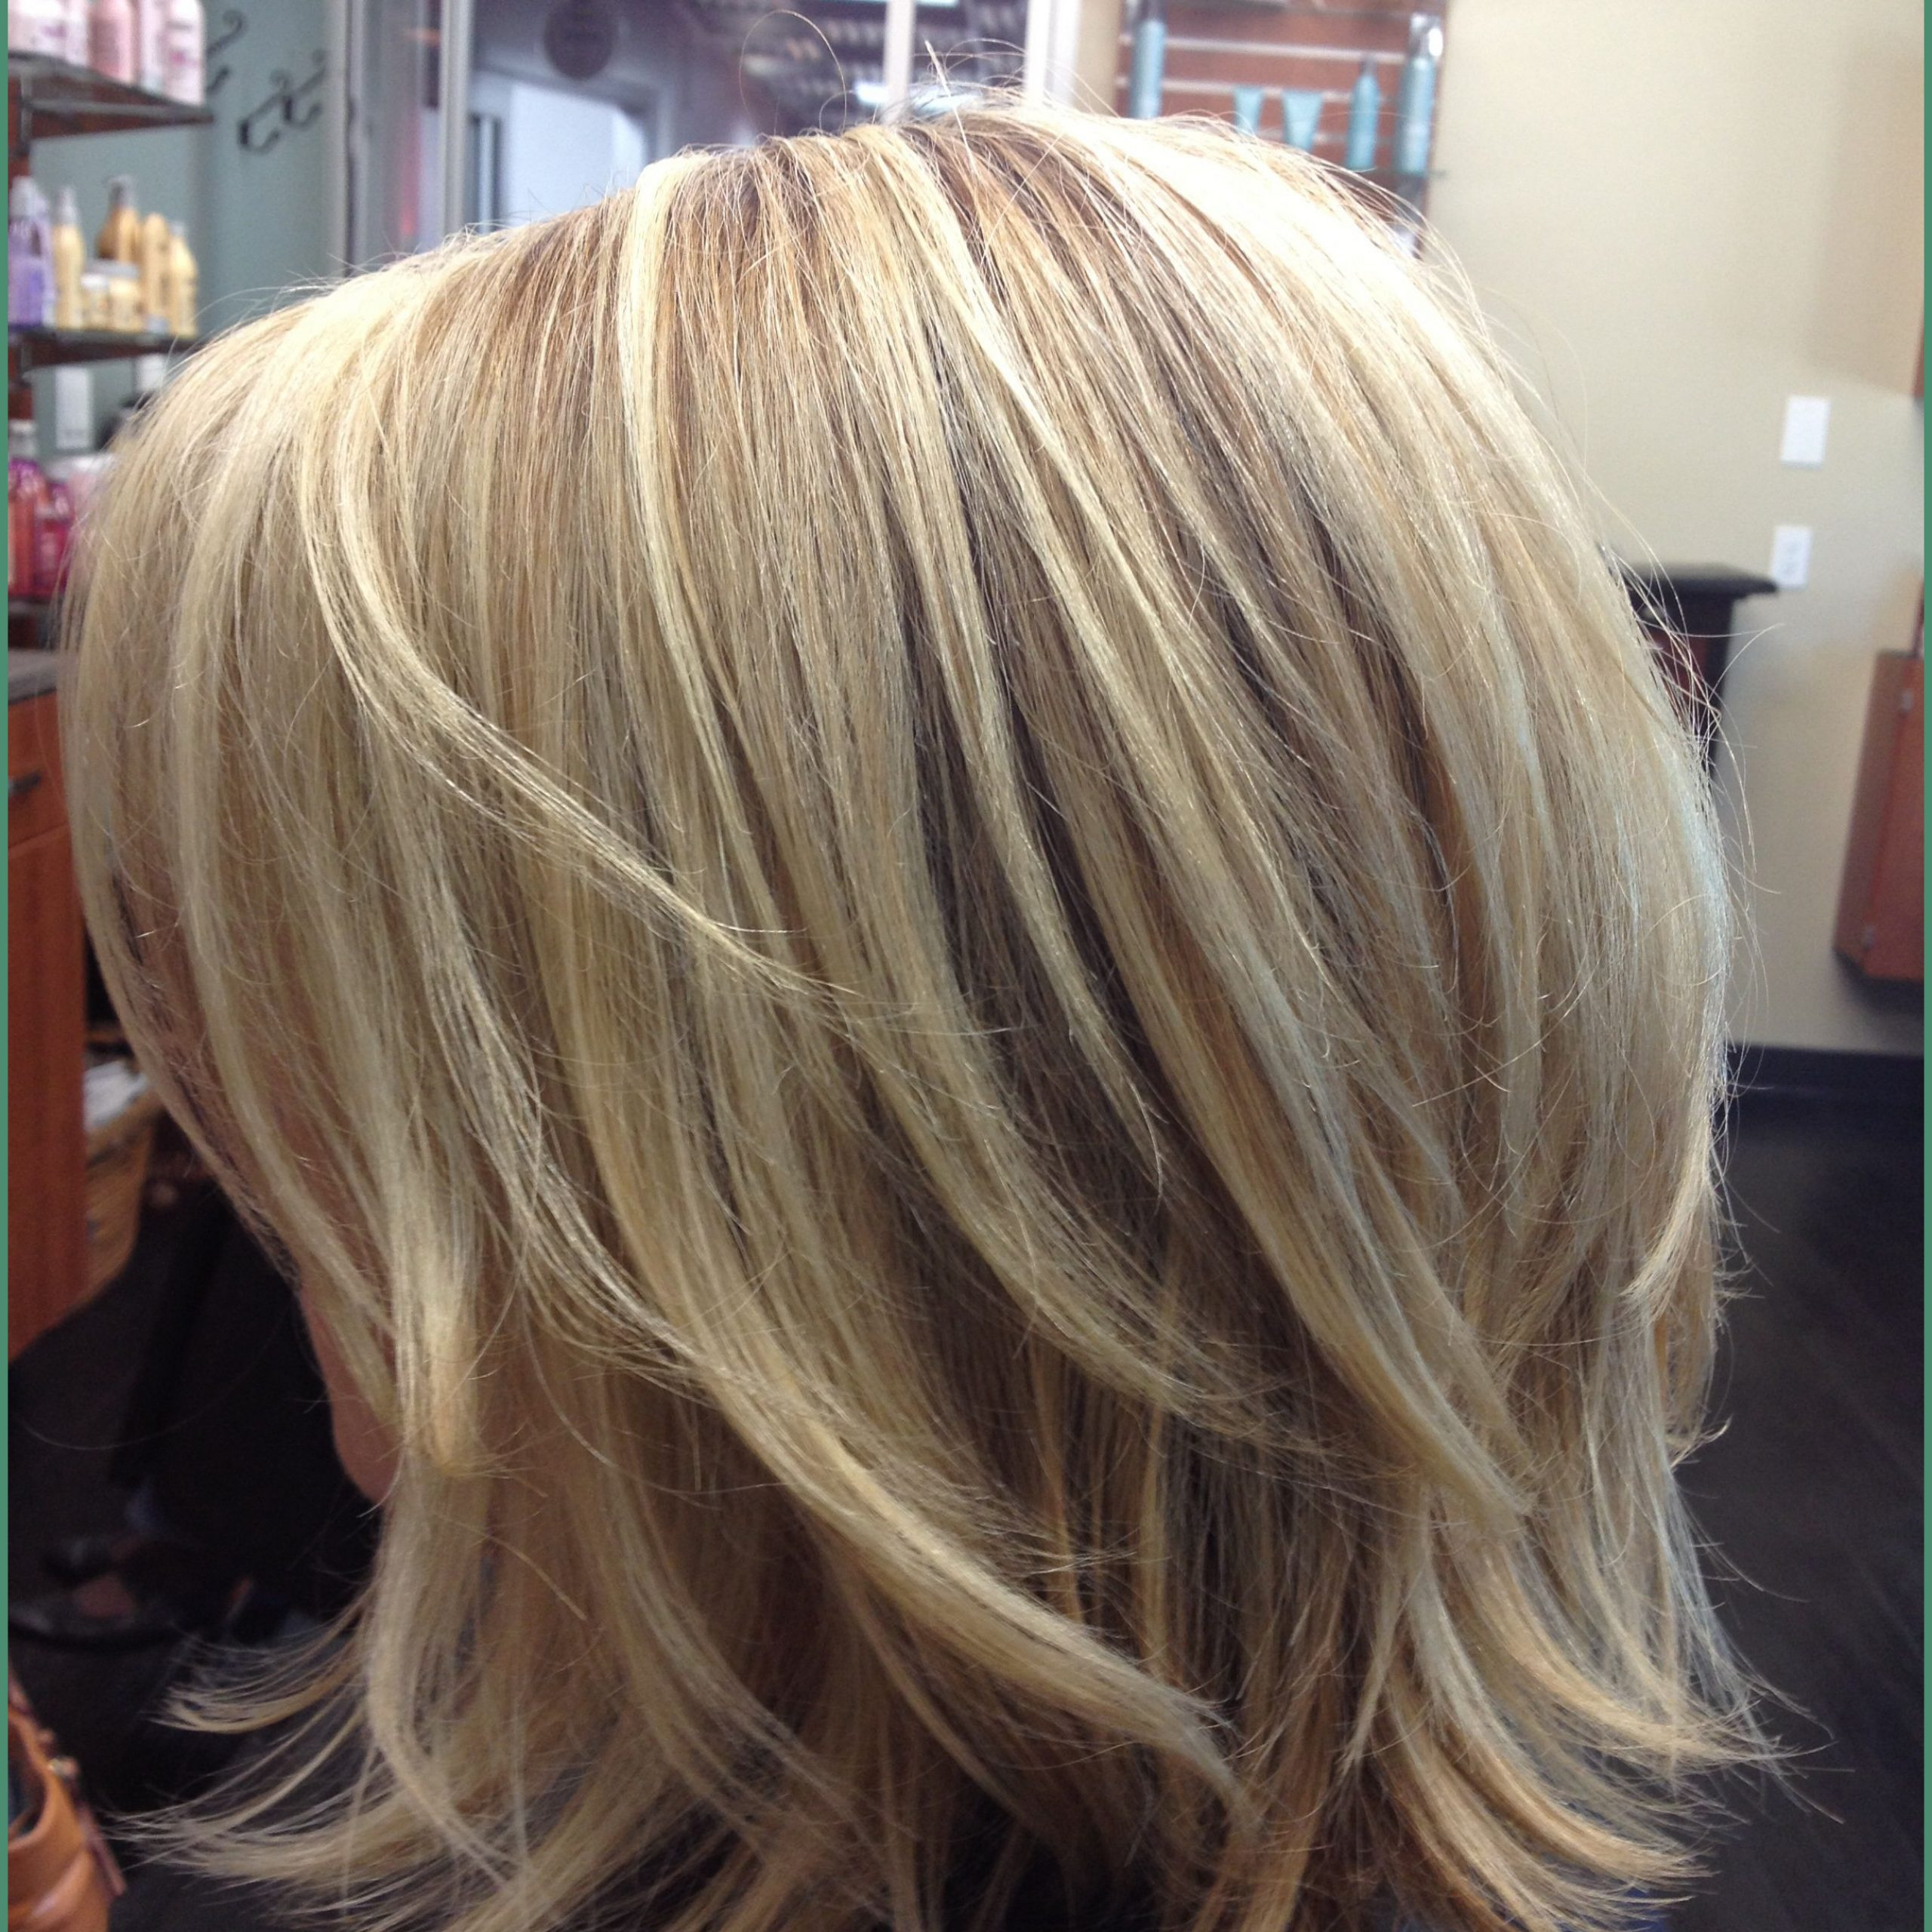 Well Liked Trendy Messy Bob Hairstyles Intended For Bob Hairstyles Archives – Petitpalacehotelgermanias (View 18 of 20)